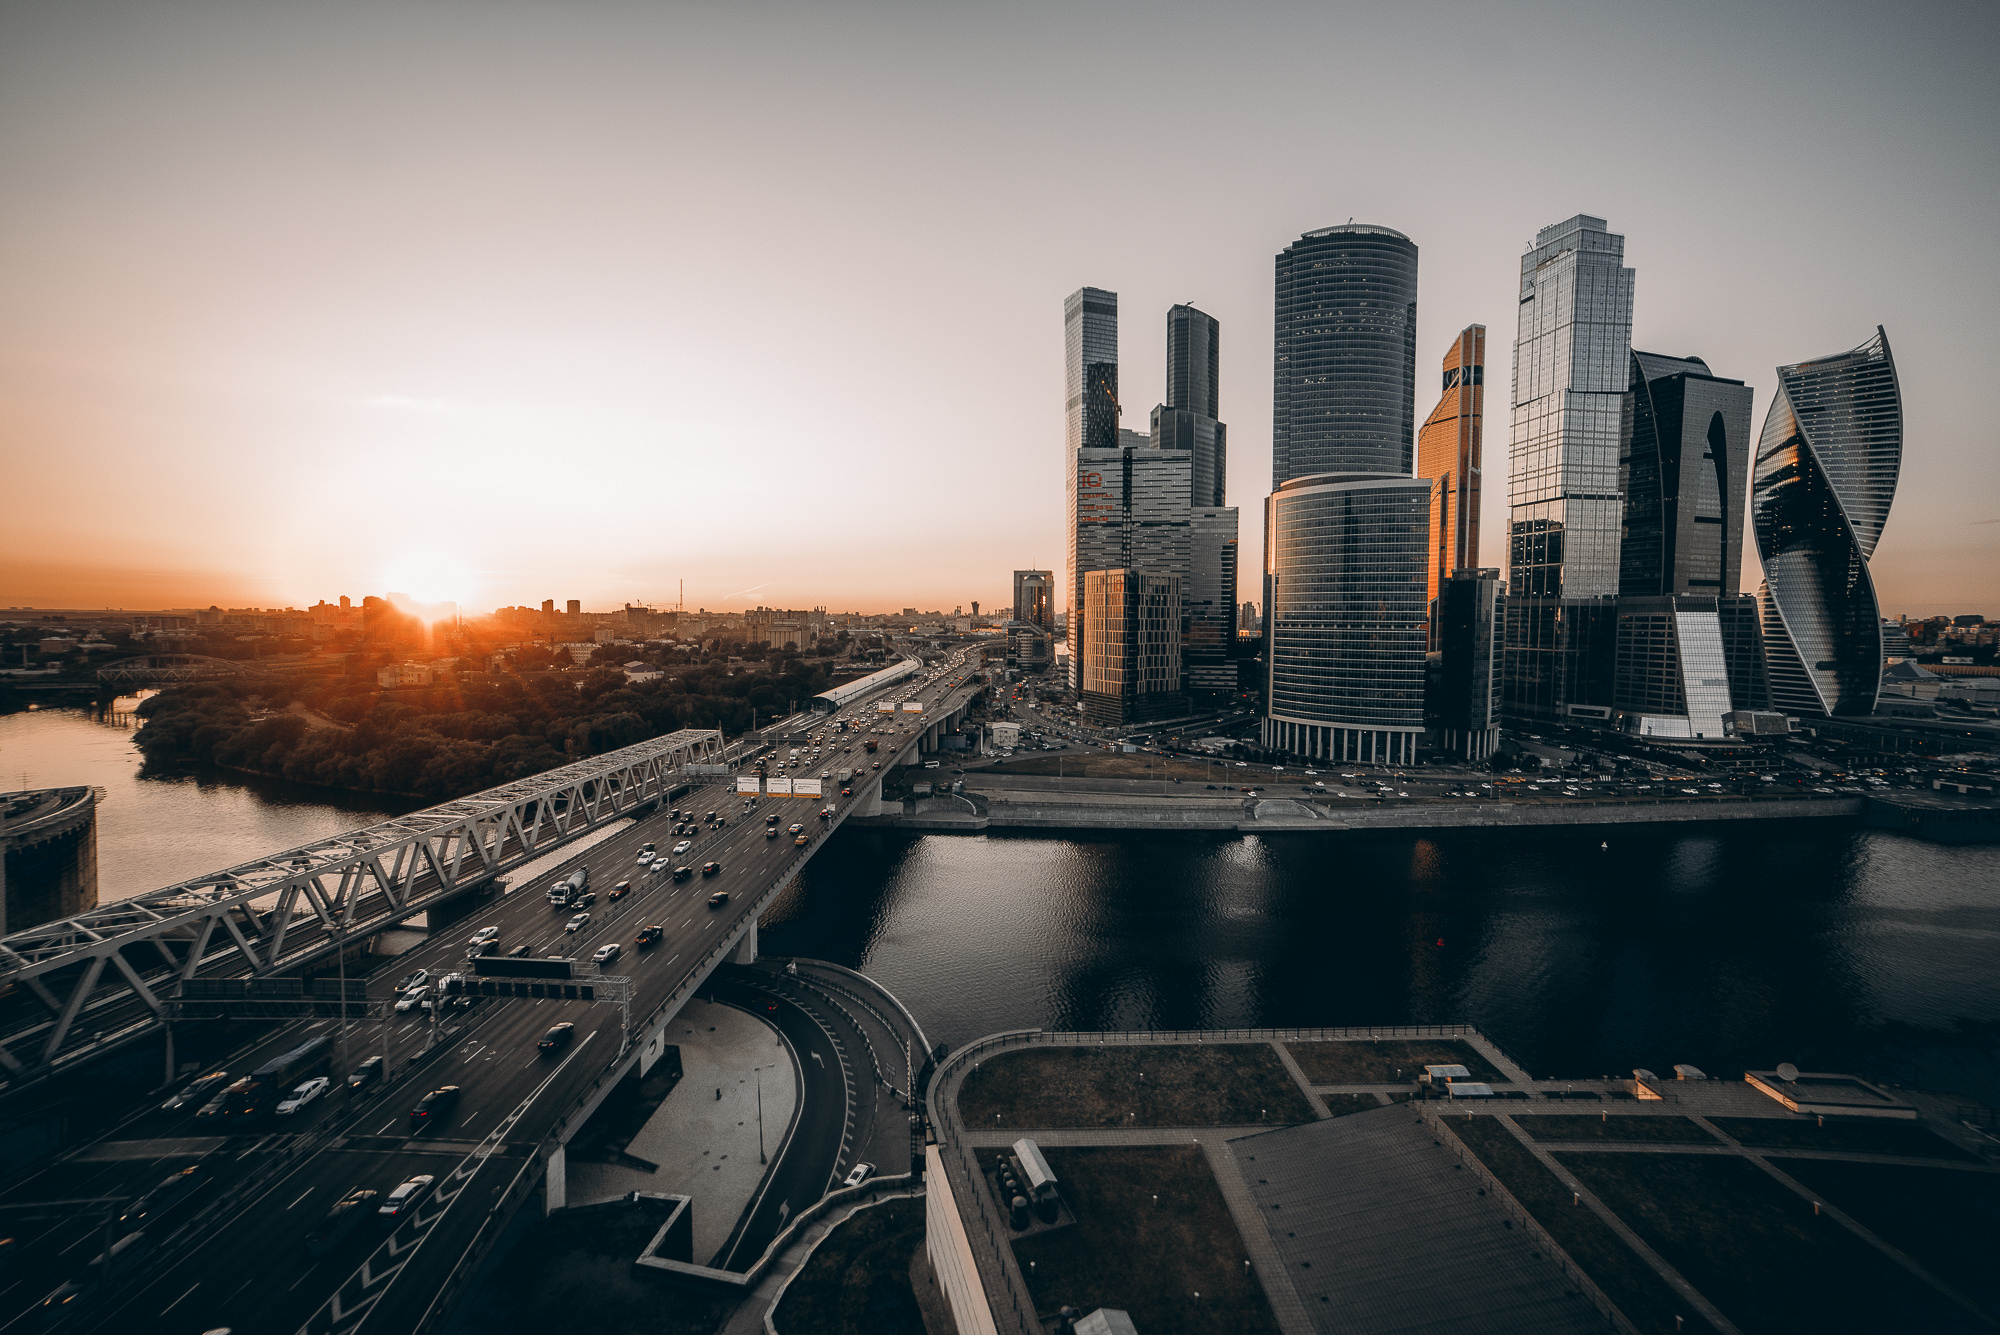 Moscow hd wallpaper background image 2000x1335 id 724153 wallpaper abyss - 4k wallpaper russia ...